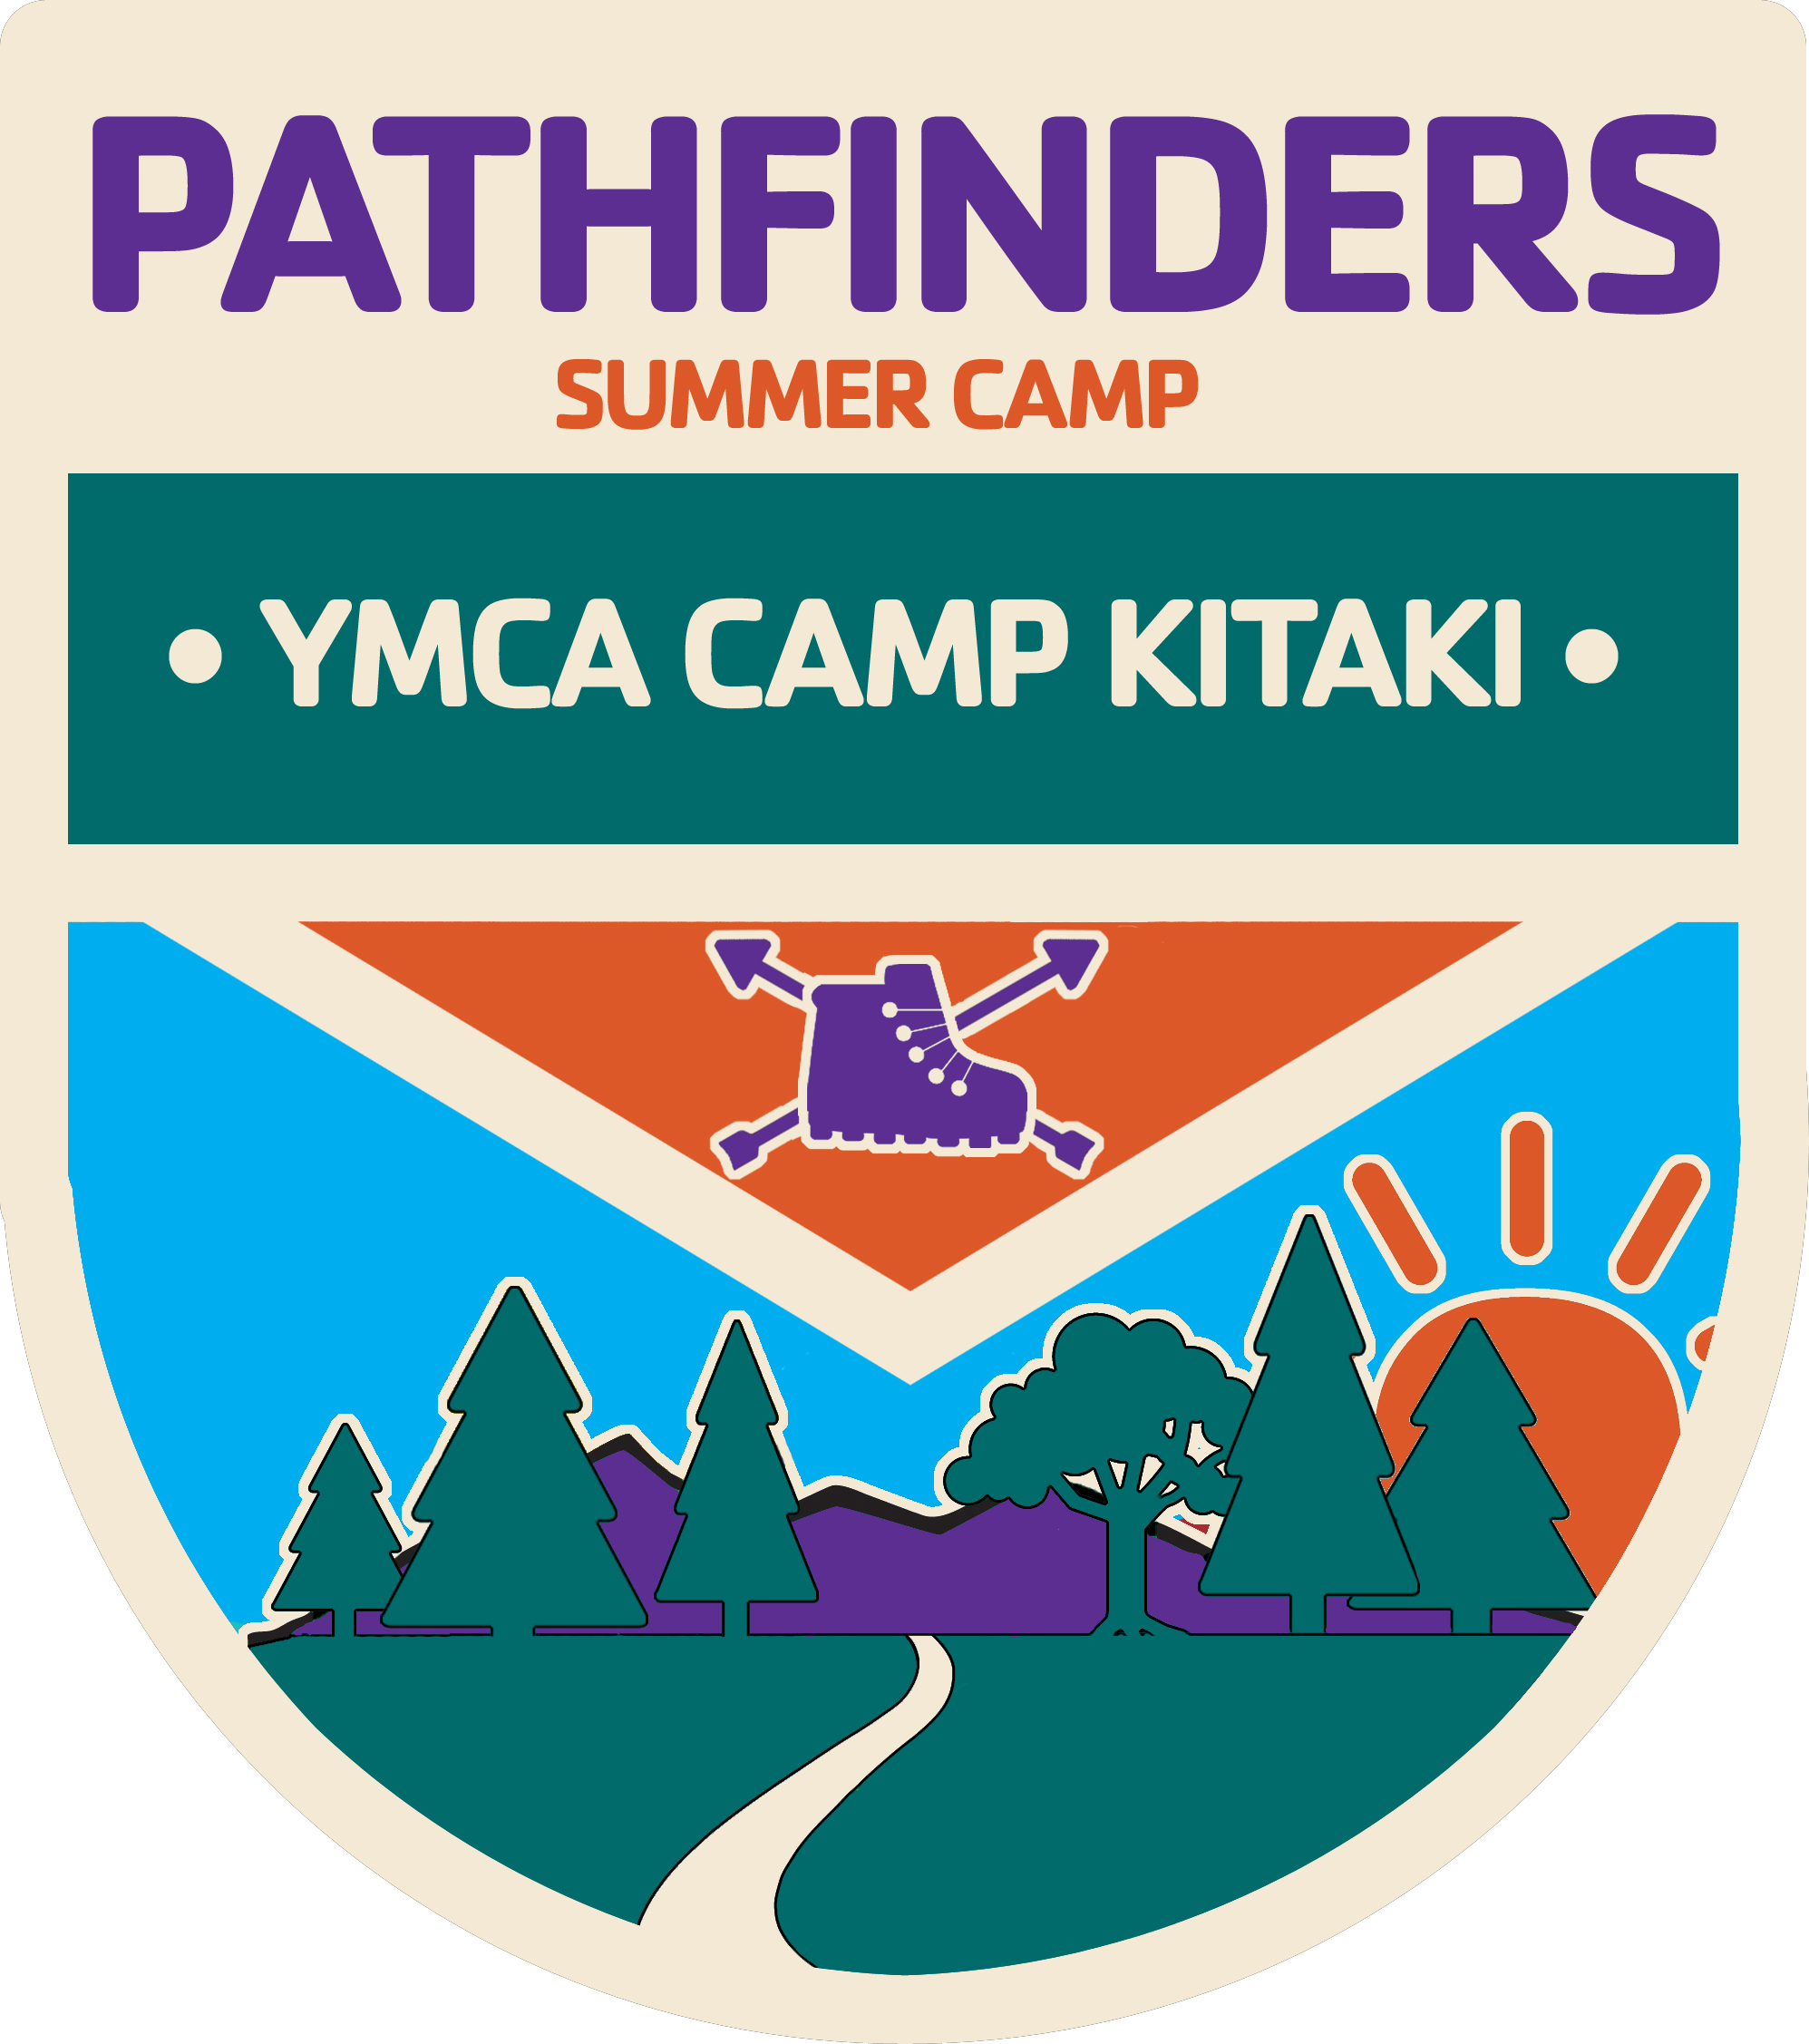 A badge for the Pathfinders camp